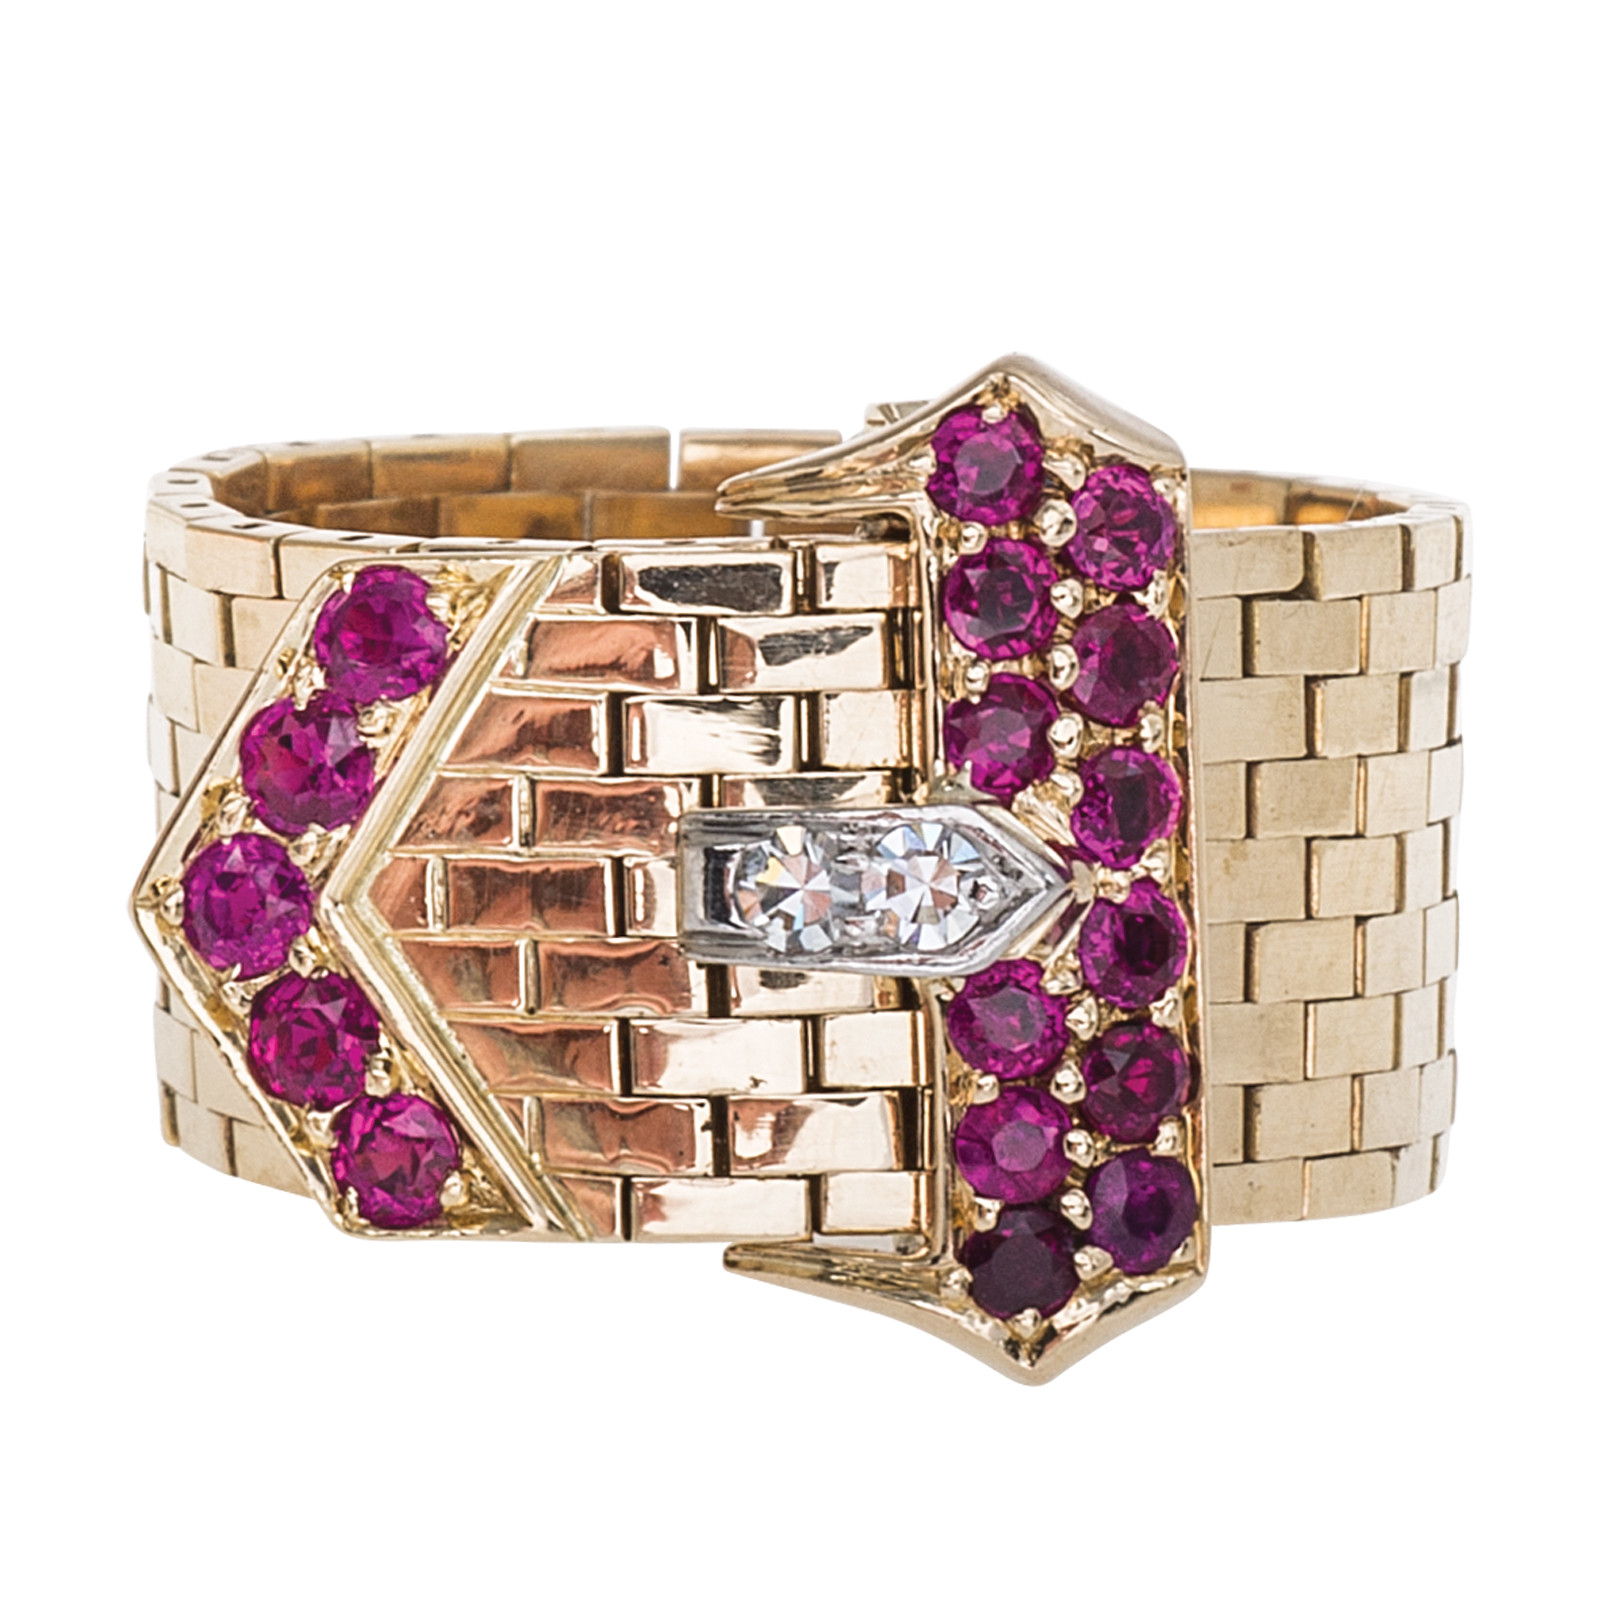 Vintage Retro-Inspired Diamond & Ruby Belt Ring